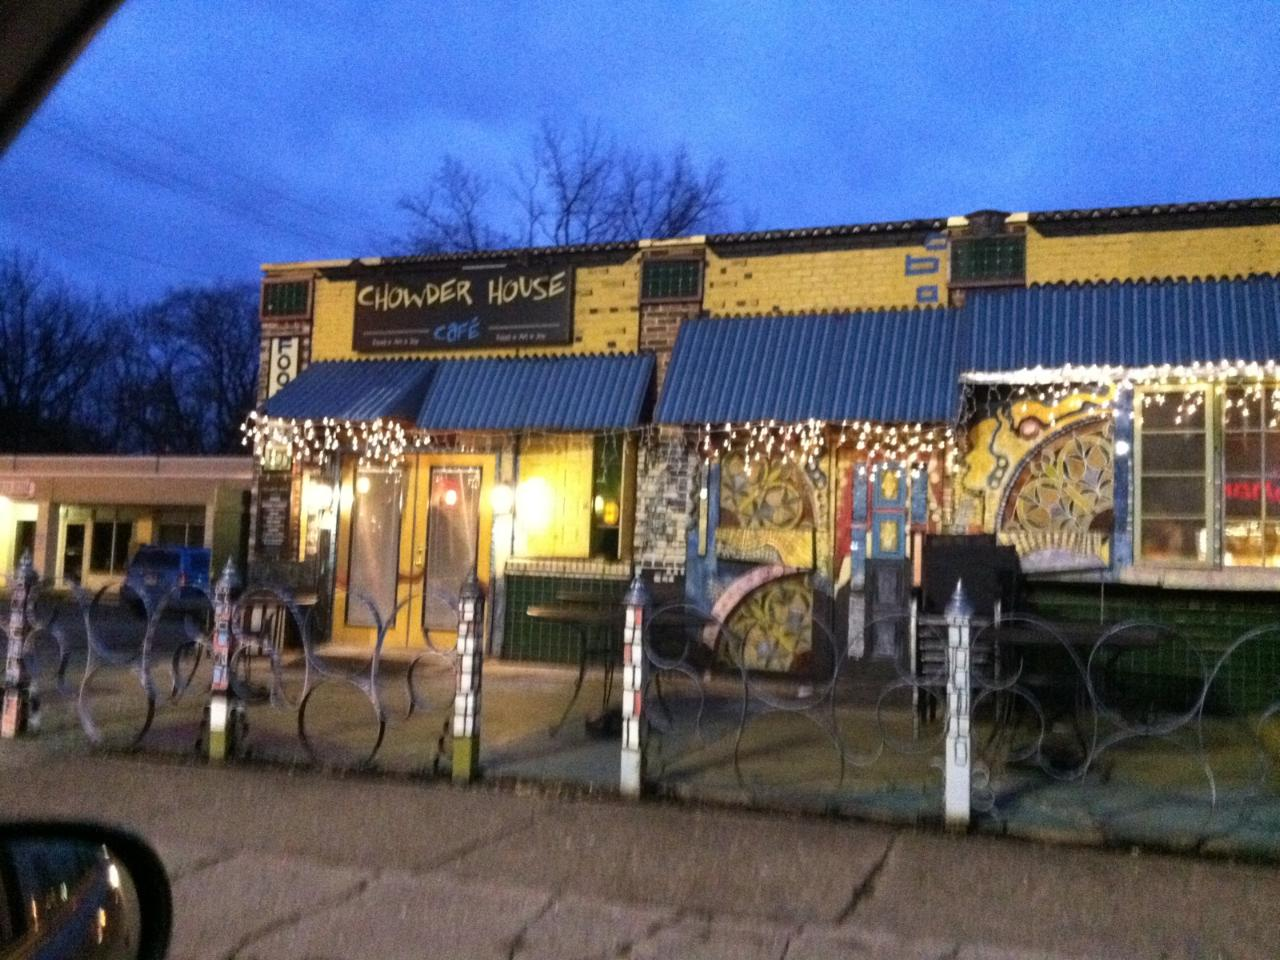 Independent Akron Chowder House Cafe Cuyahoga Falls